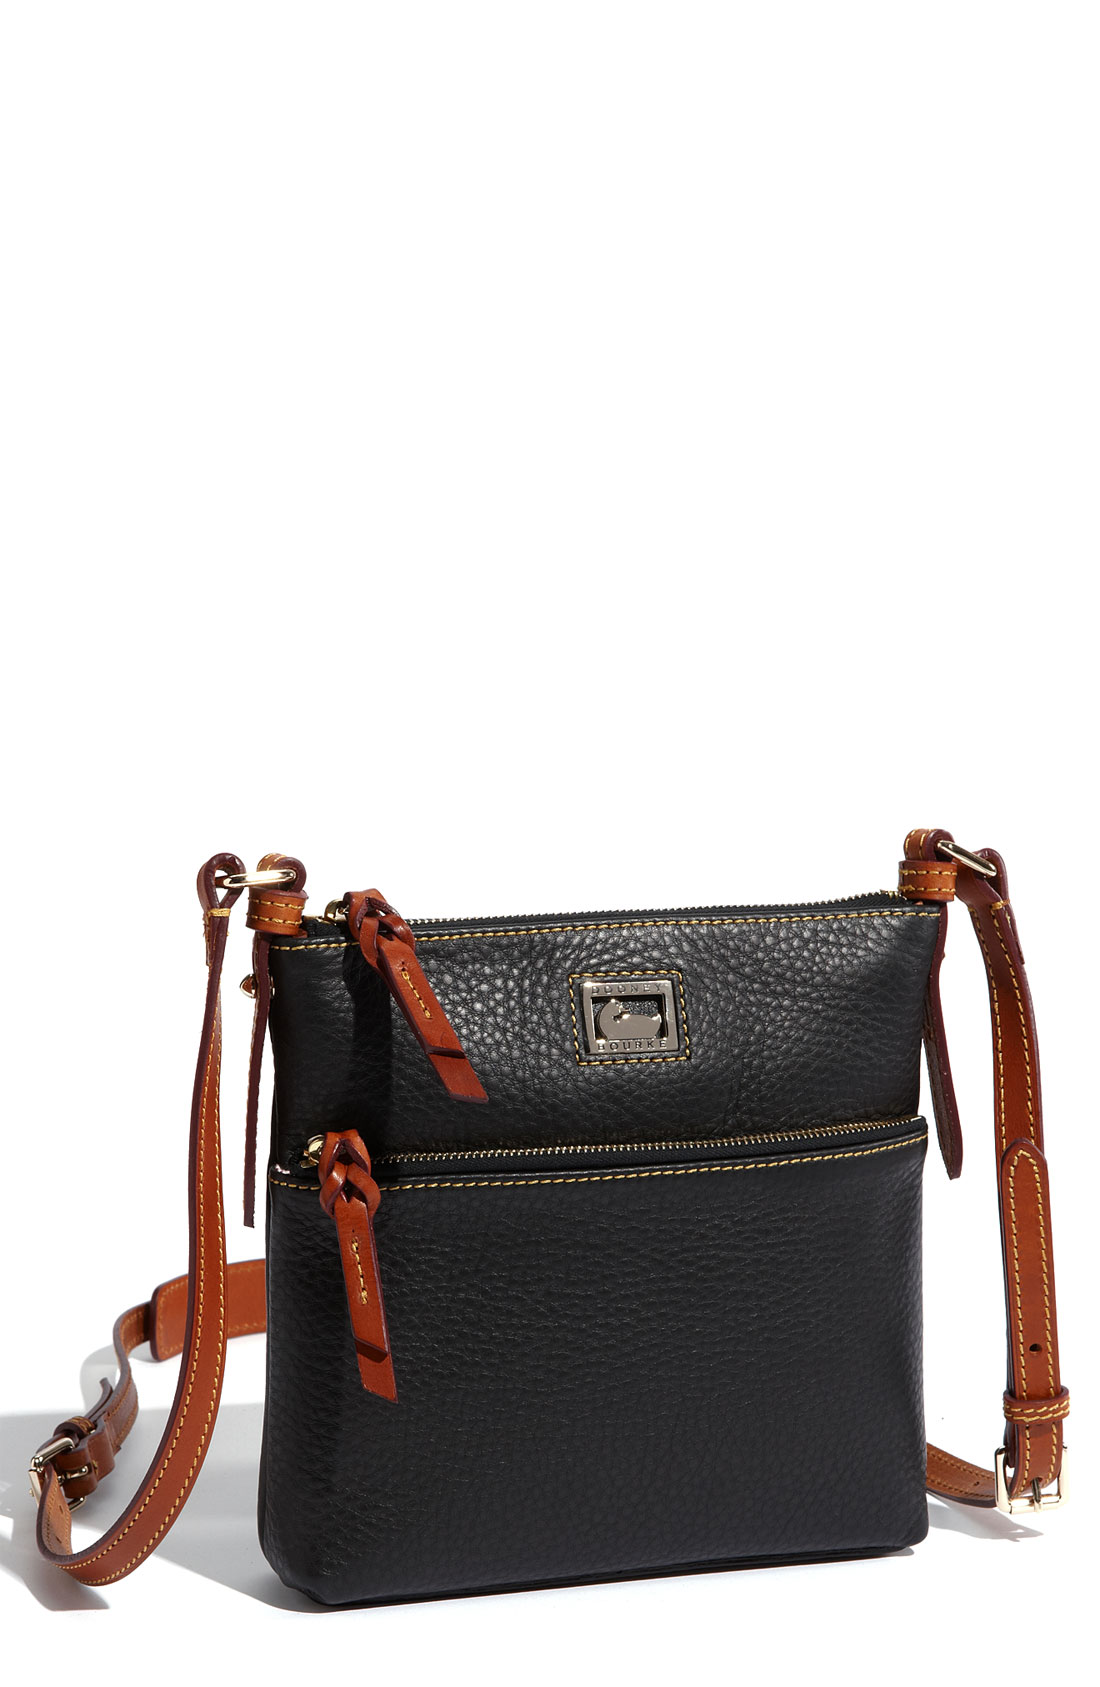 dooney bourke dillen ii letter carrier crossbody bag in With letter carrier bag